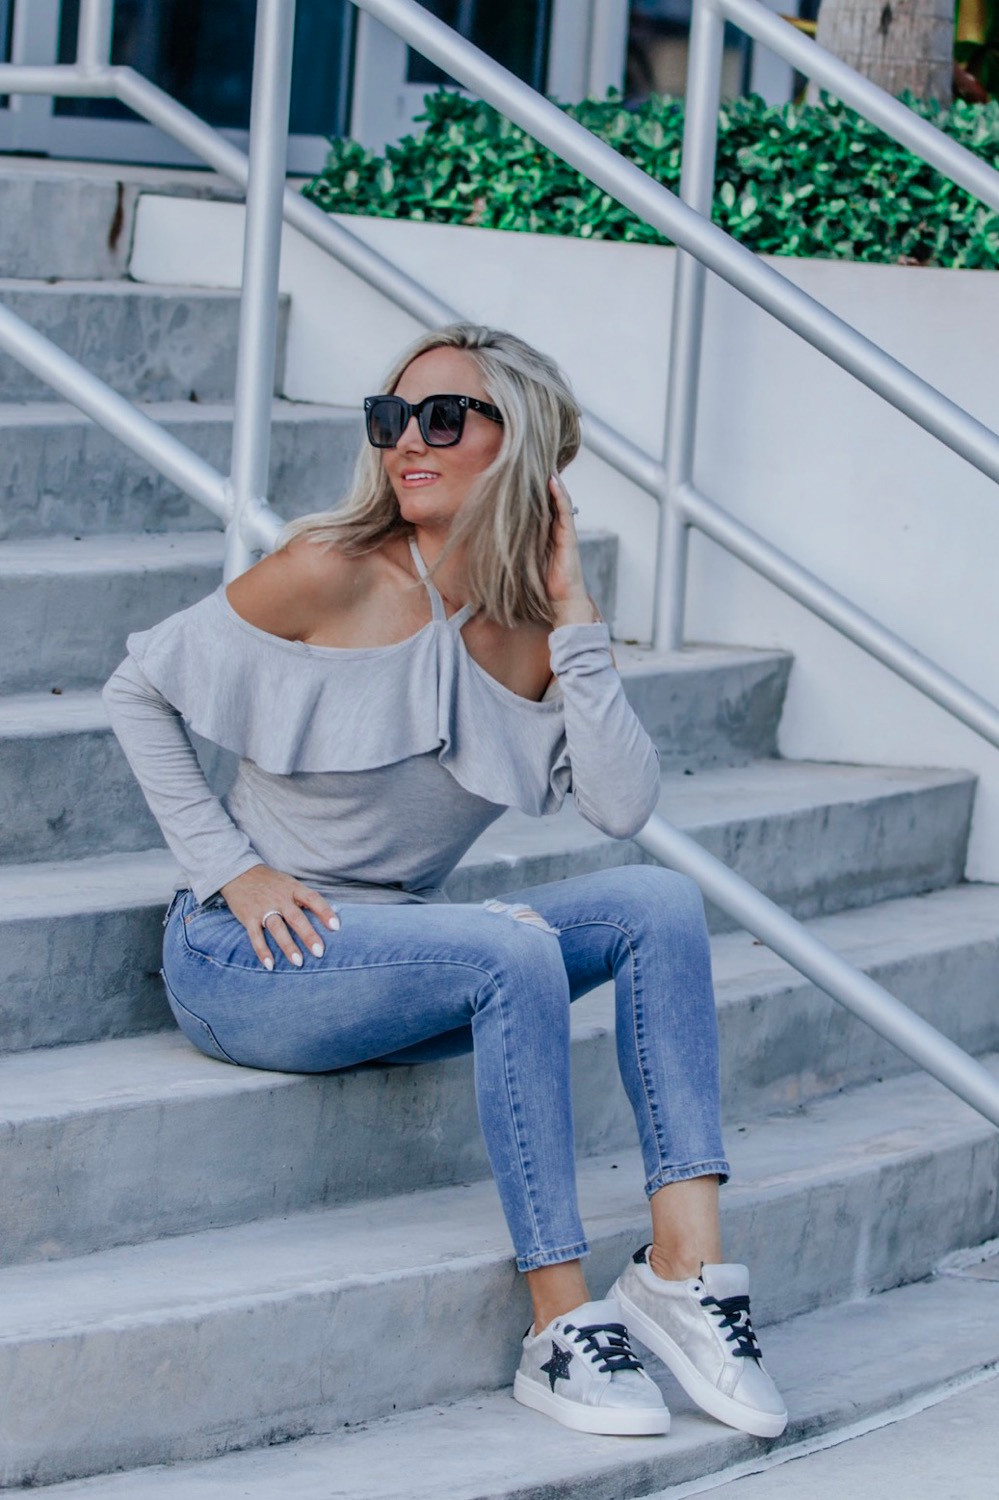 walmart top and jeans on girl on steps